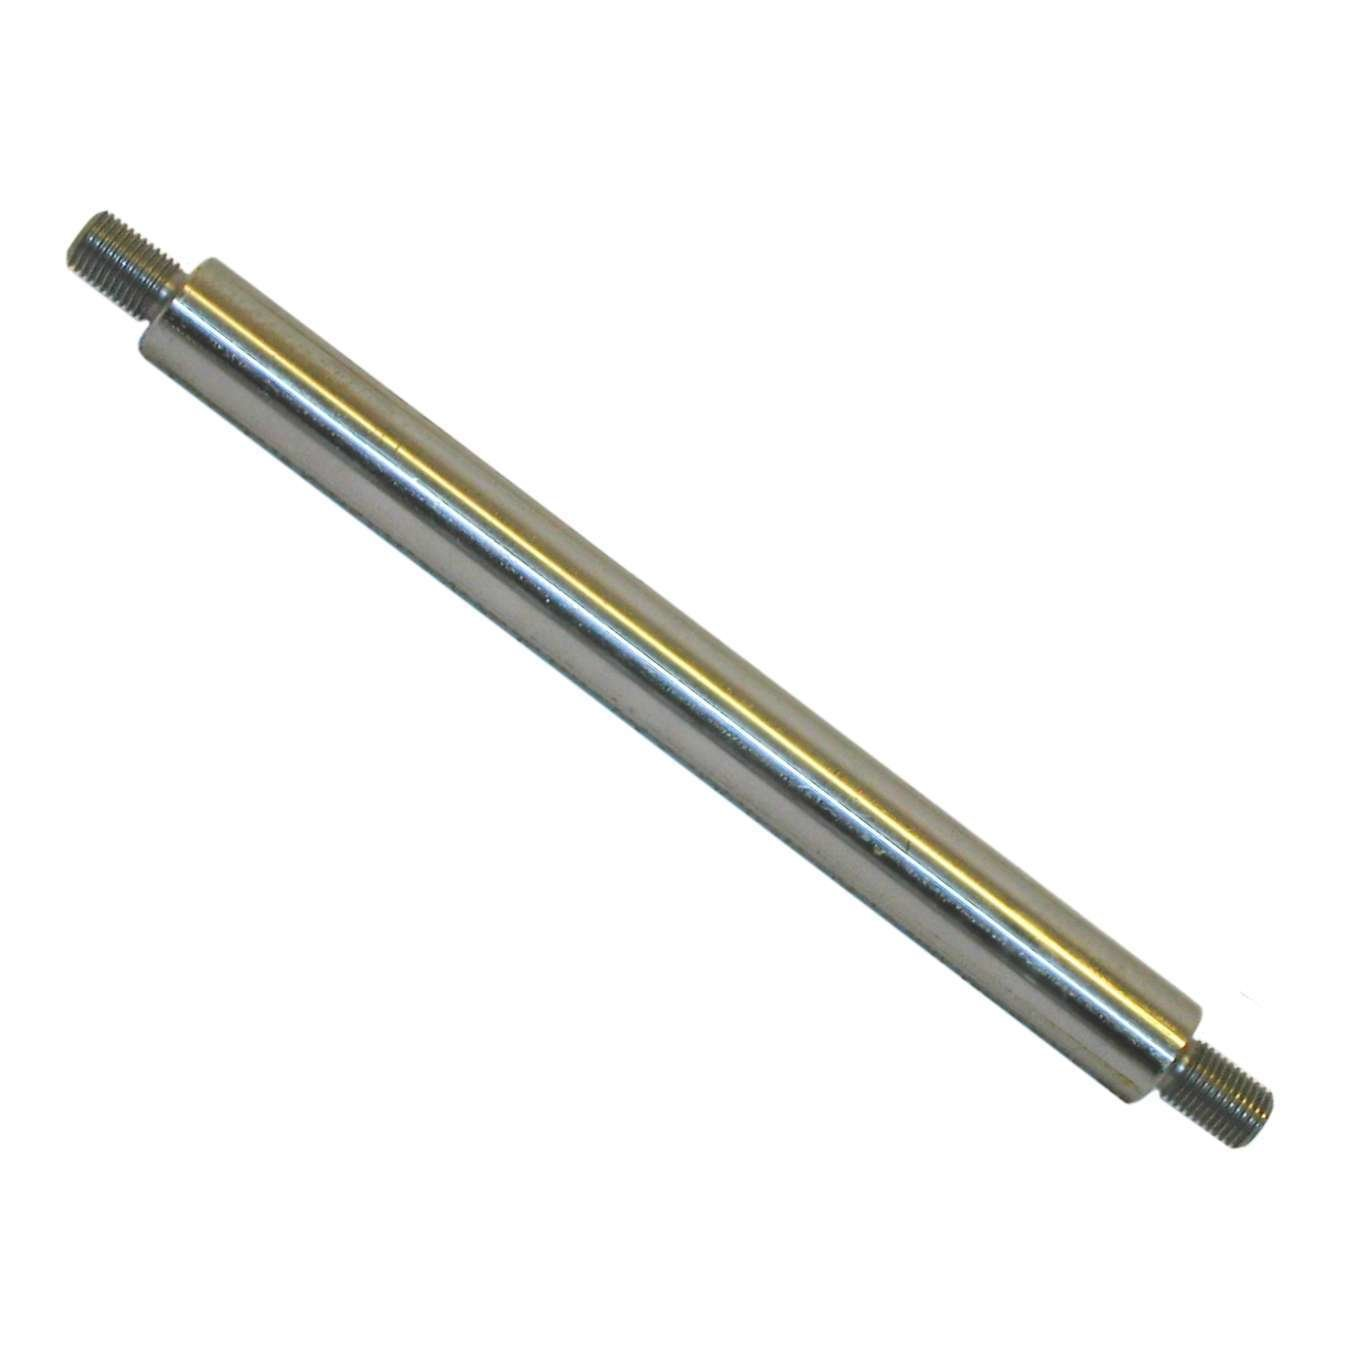 070-011-796	SHAFT LOWER D